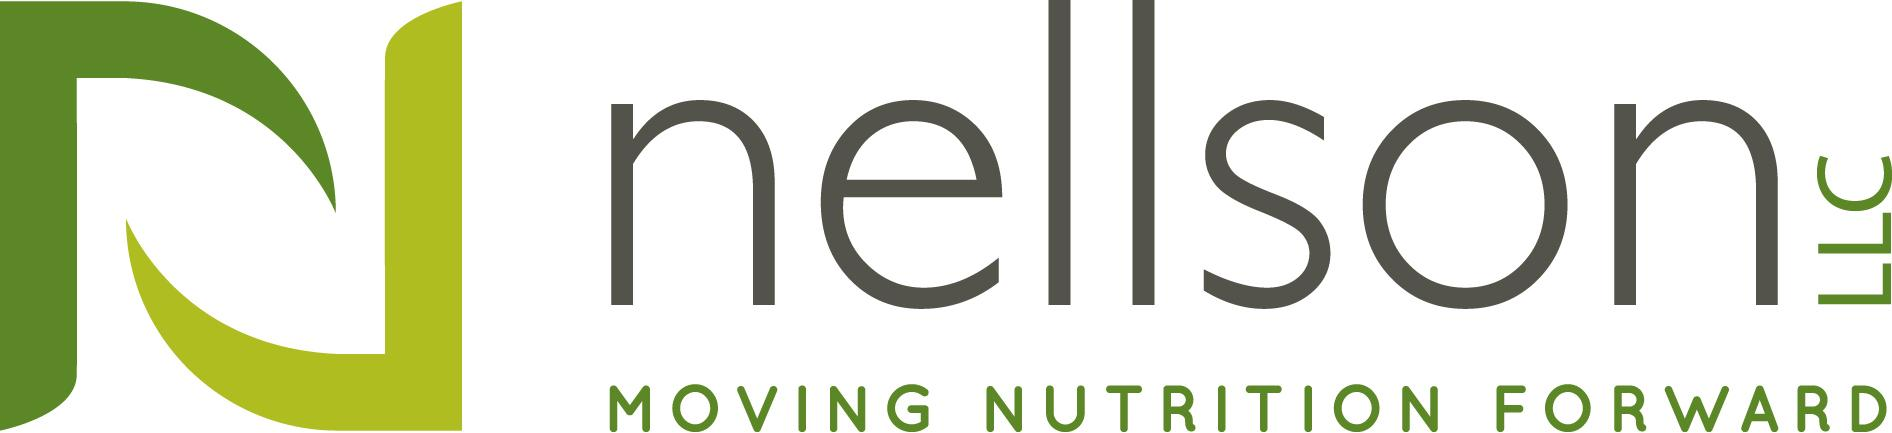 Nellson Competitors, Revenue and Employees - Owler Company